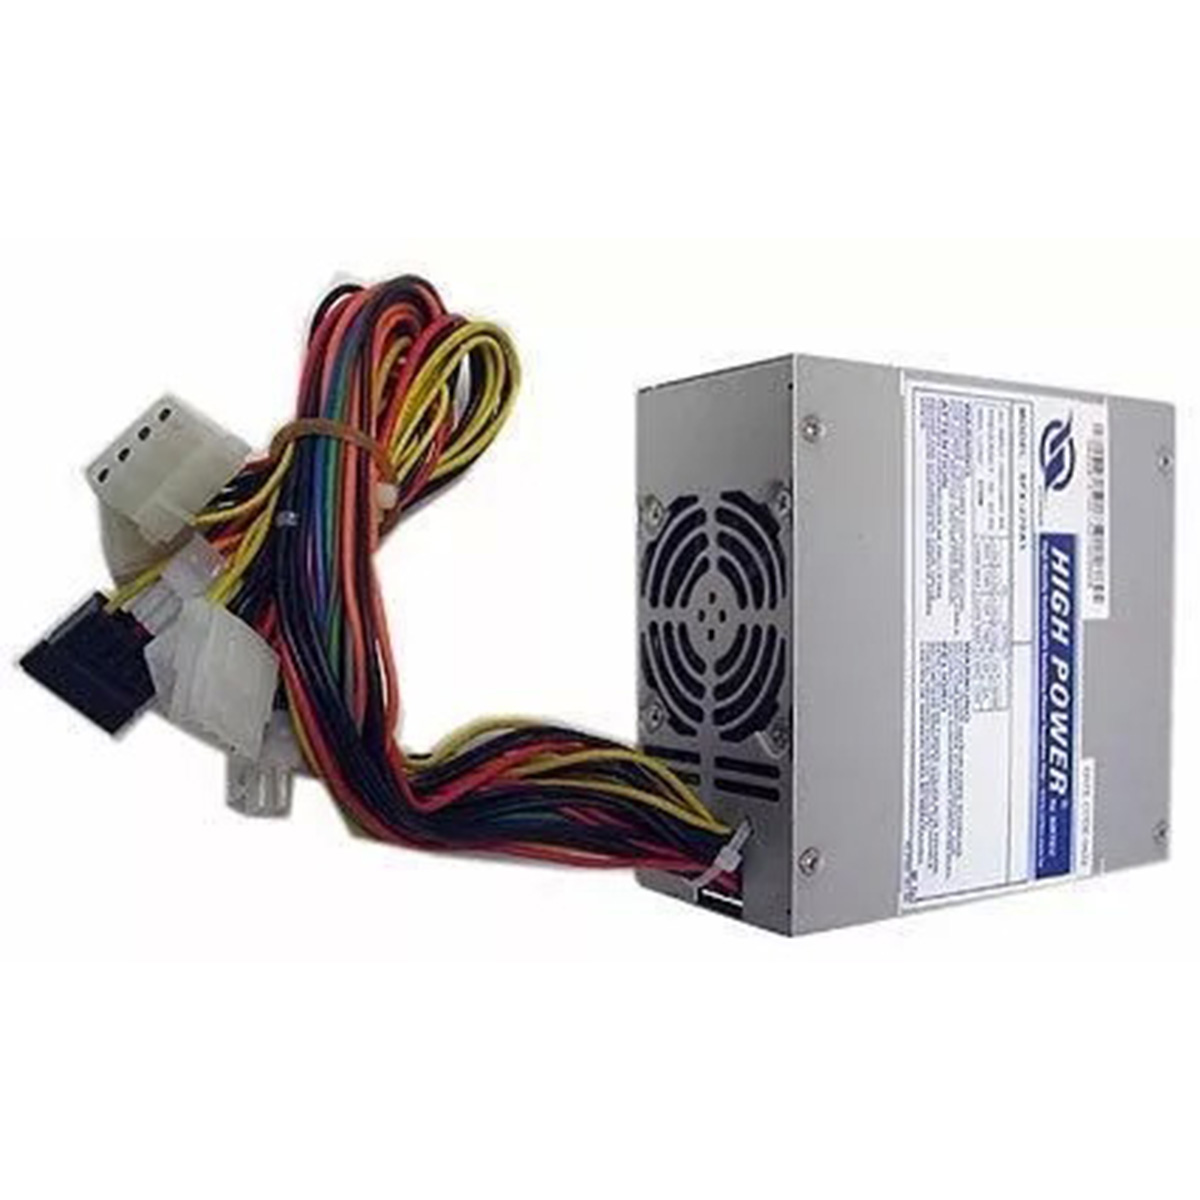 Fonte Mini Atx High Power SFX-270A1 270w 24 Pinos - Usada